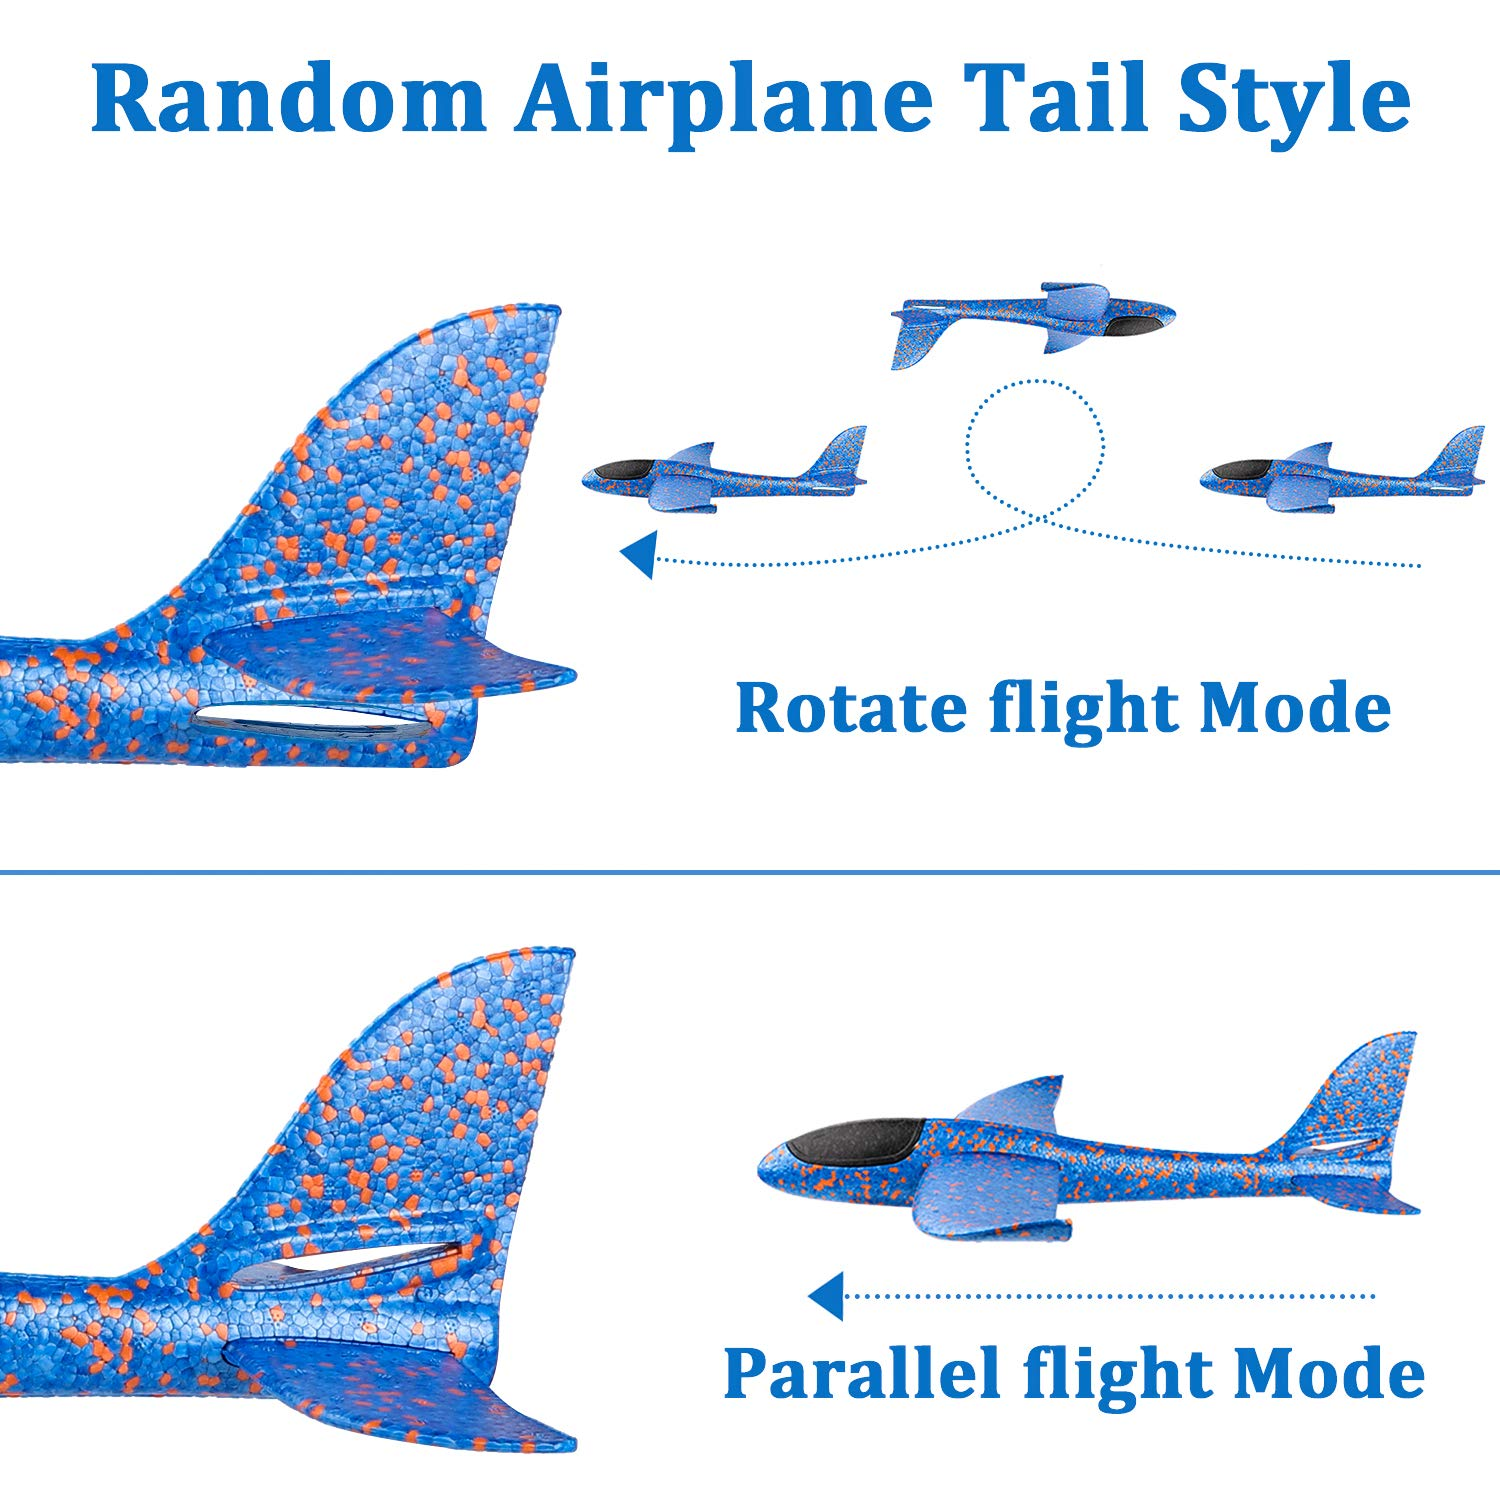 WATINC 6 pcs Airplane 14.5inch Manual Foam Flying Glider Planes Throwing Fun Challenging Games Outdoor Sports Toy Model Air Plane Two Flight Modes Blue Orange Aircraft for Boys Girls by WATINC (Image #4)